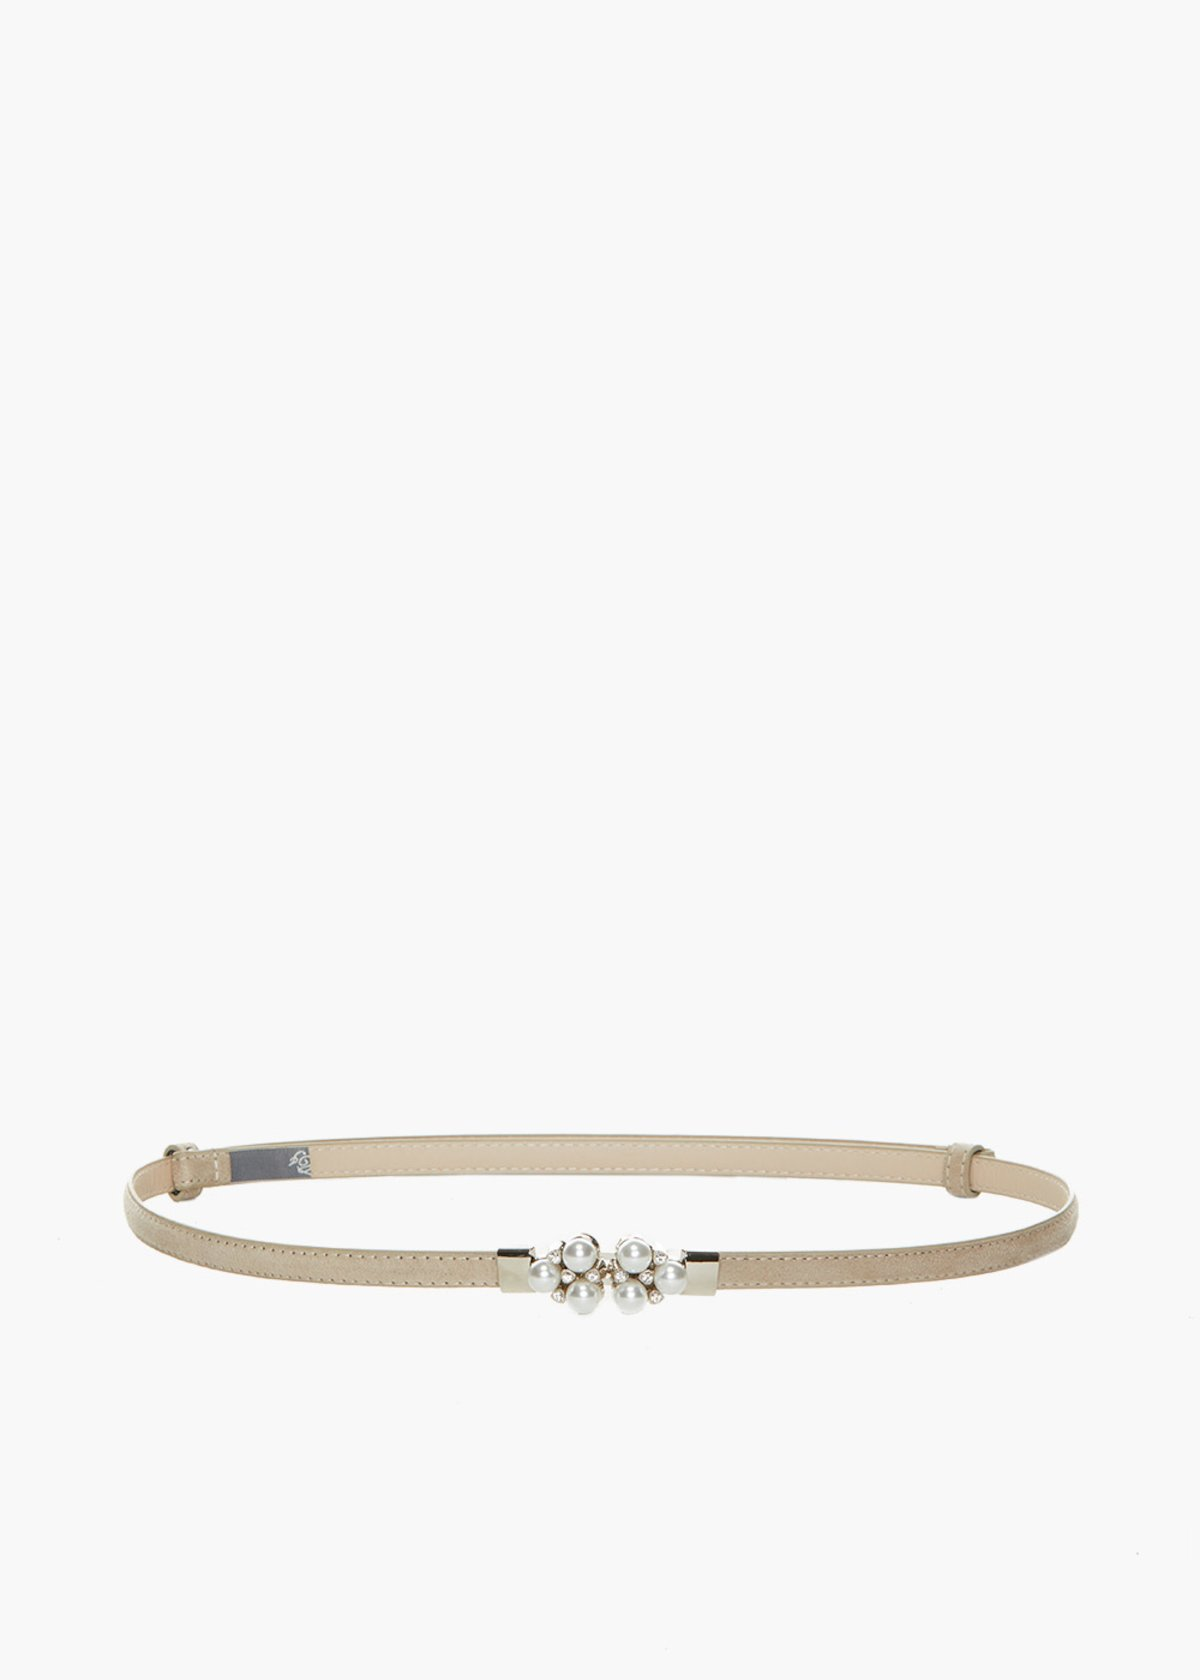 Faux suede Craia belt with pearls and crystal detail